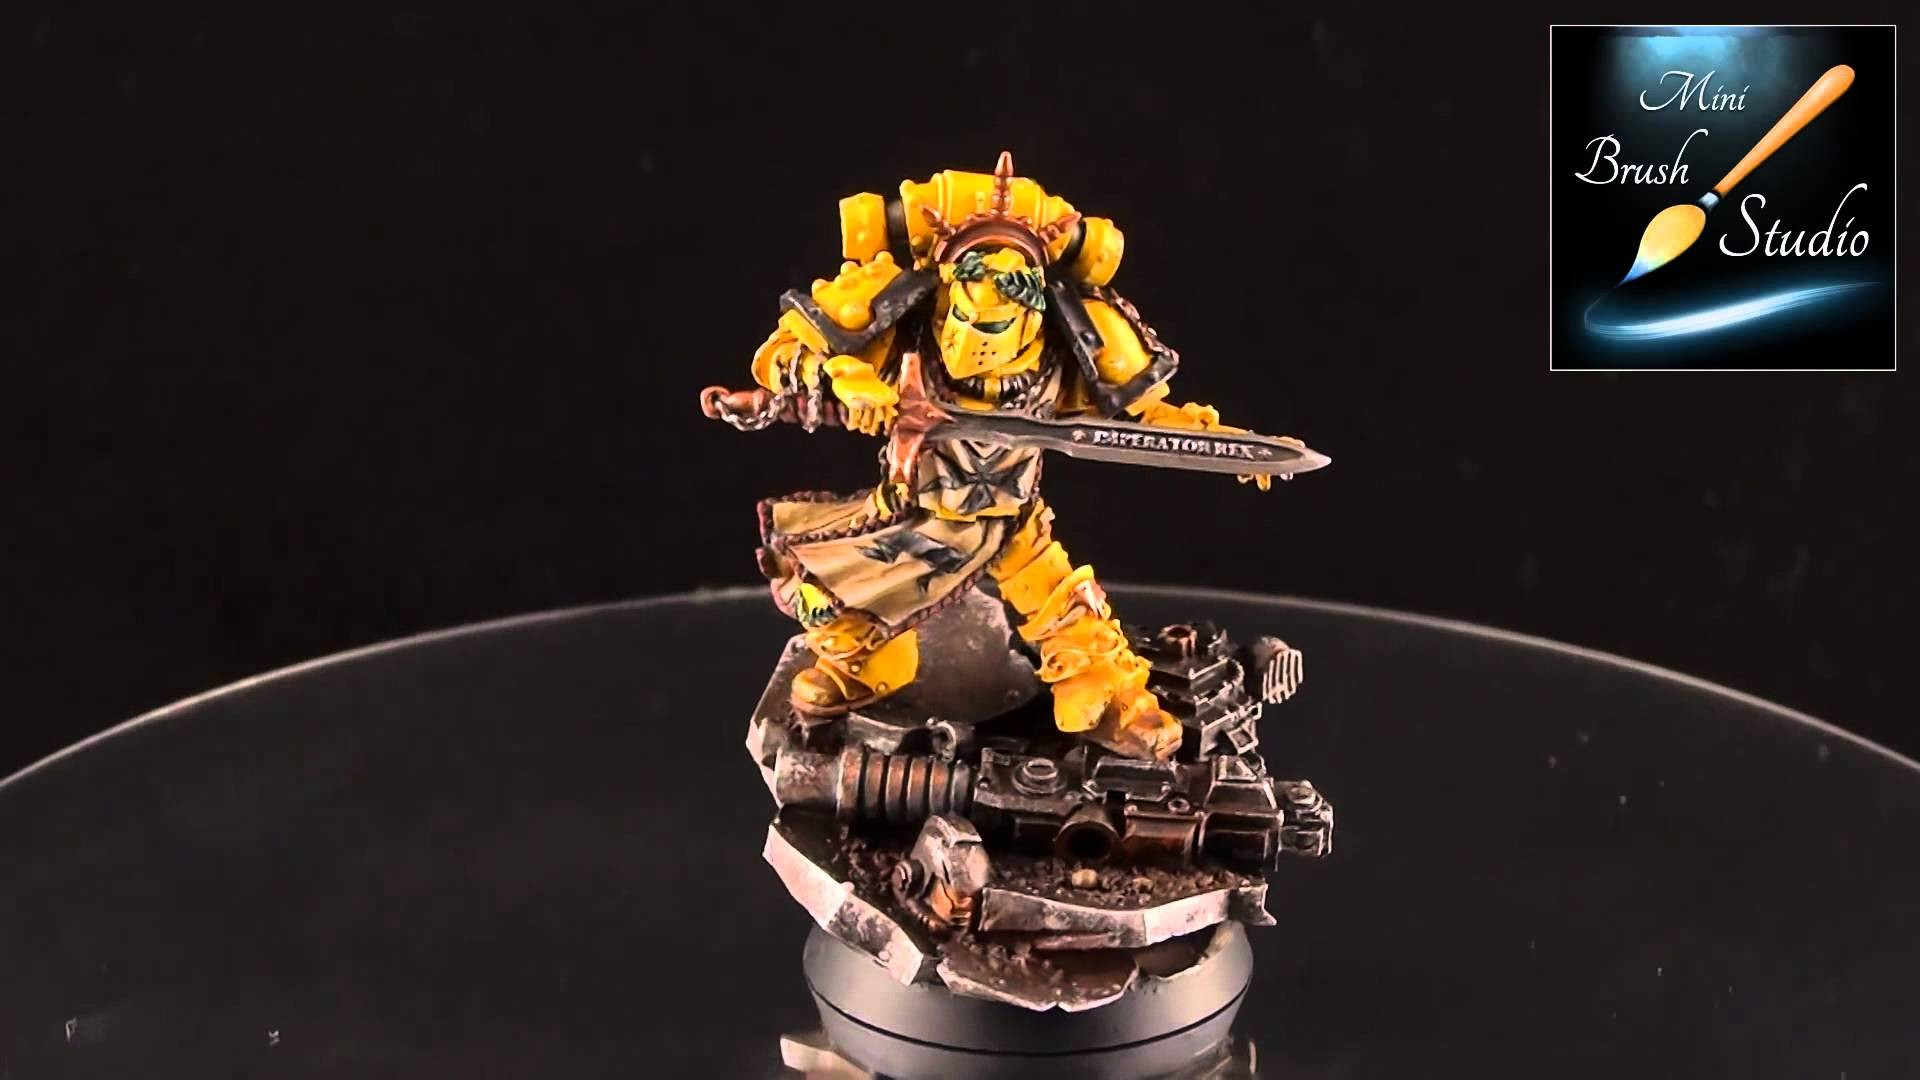 1920x1080 Forge World - Sigismund First Captain of the Imperial Fists